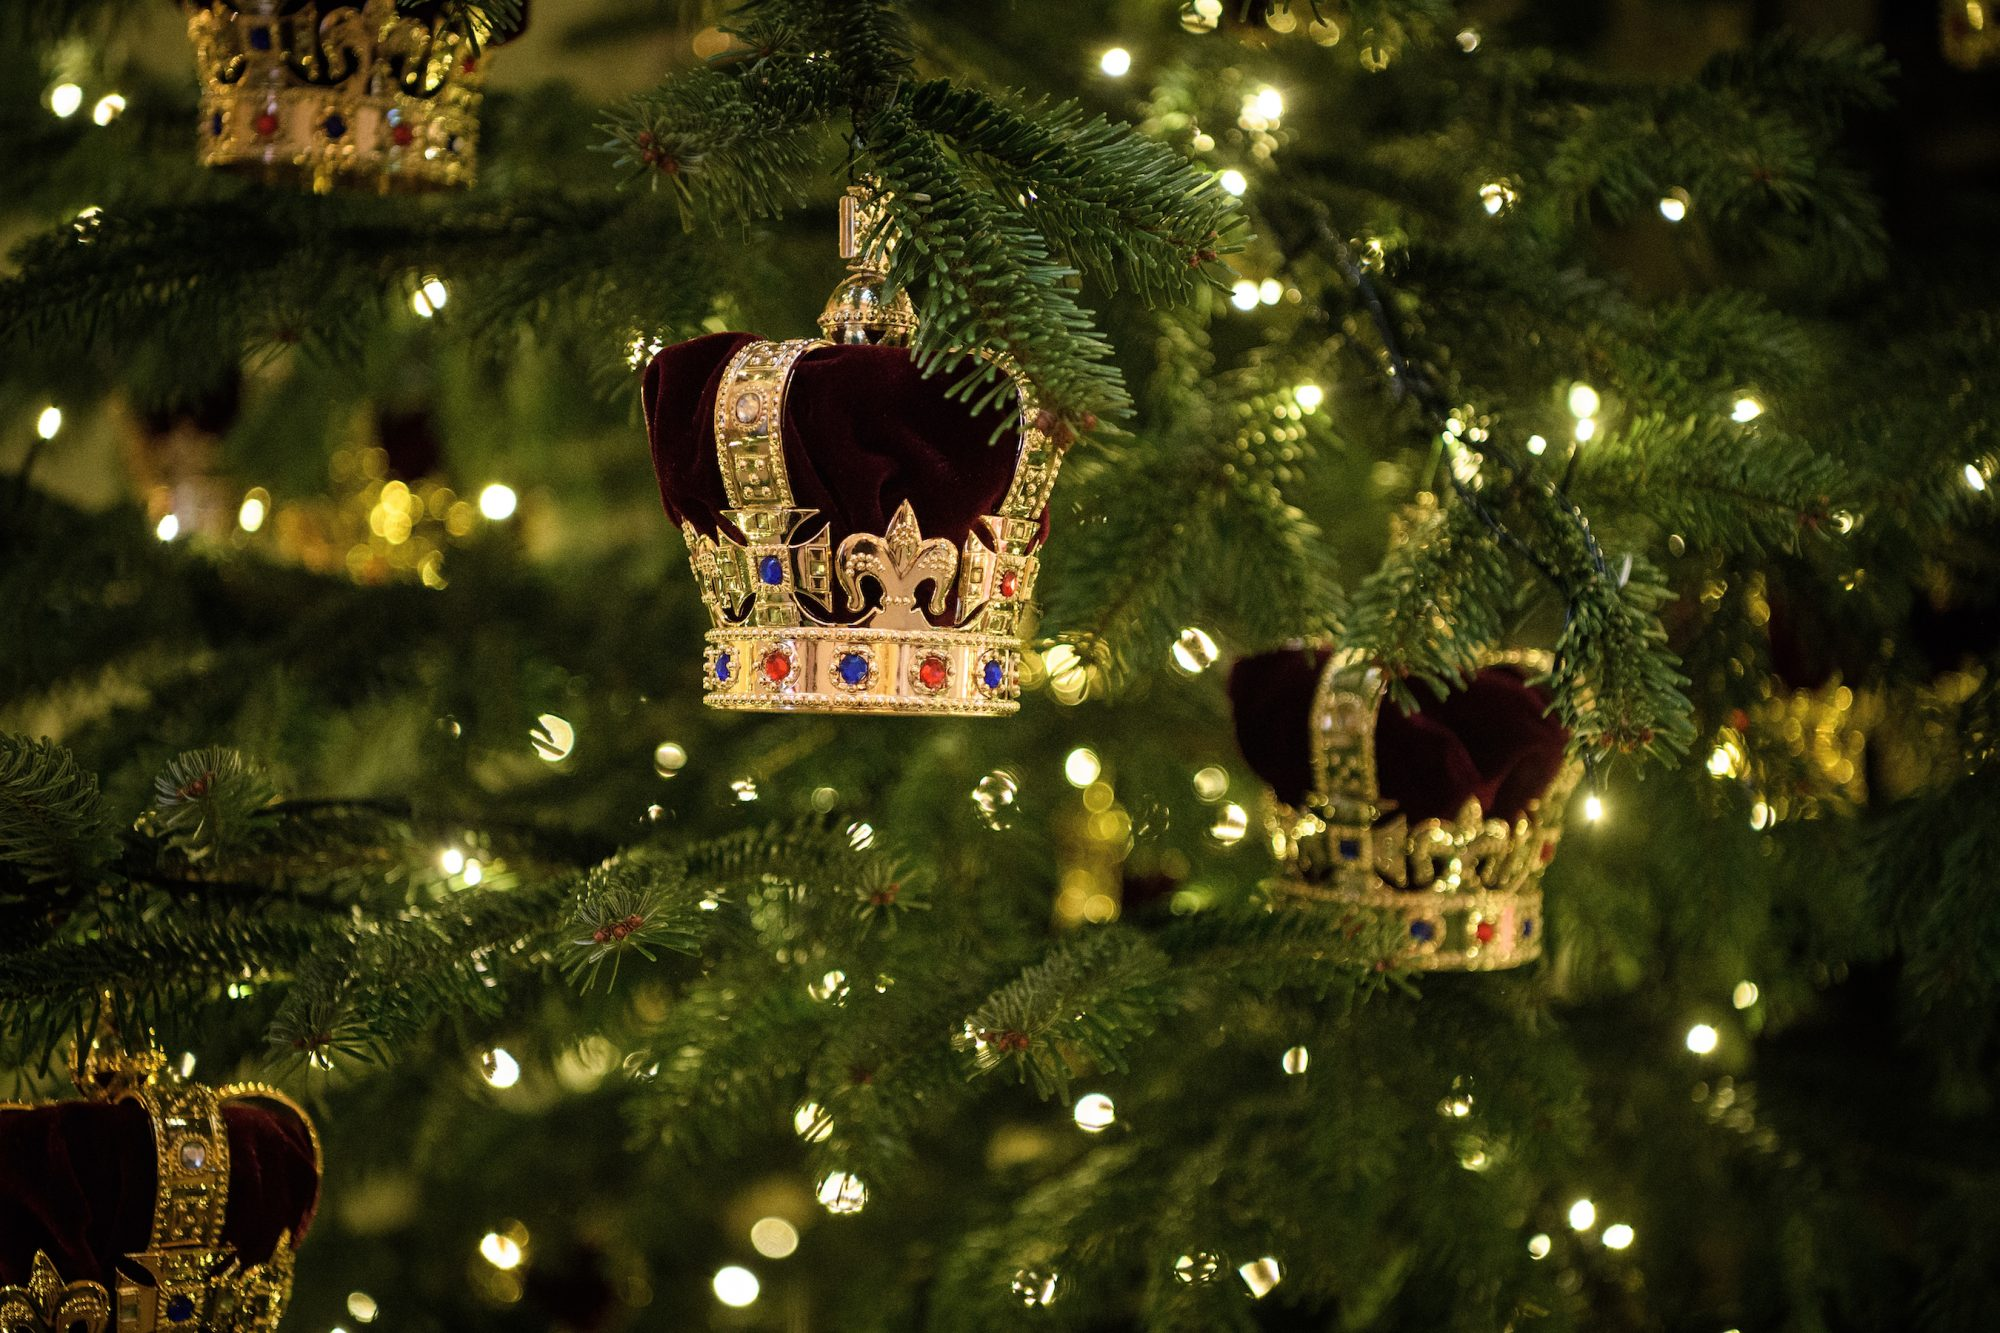 Christmas tree with royal crown ornaments